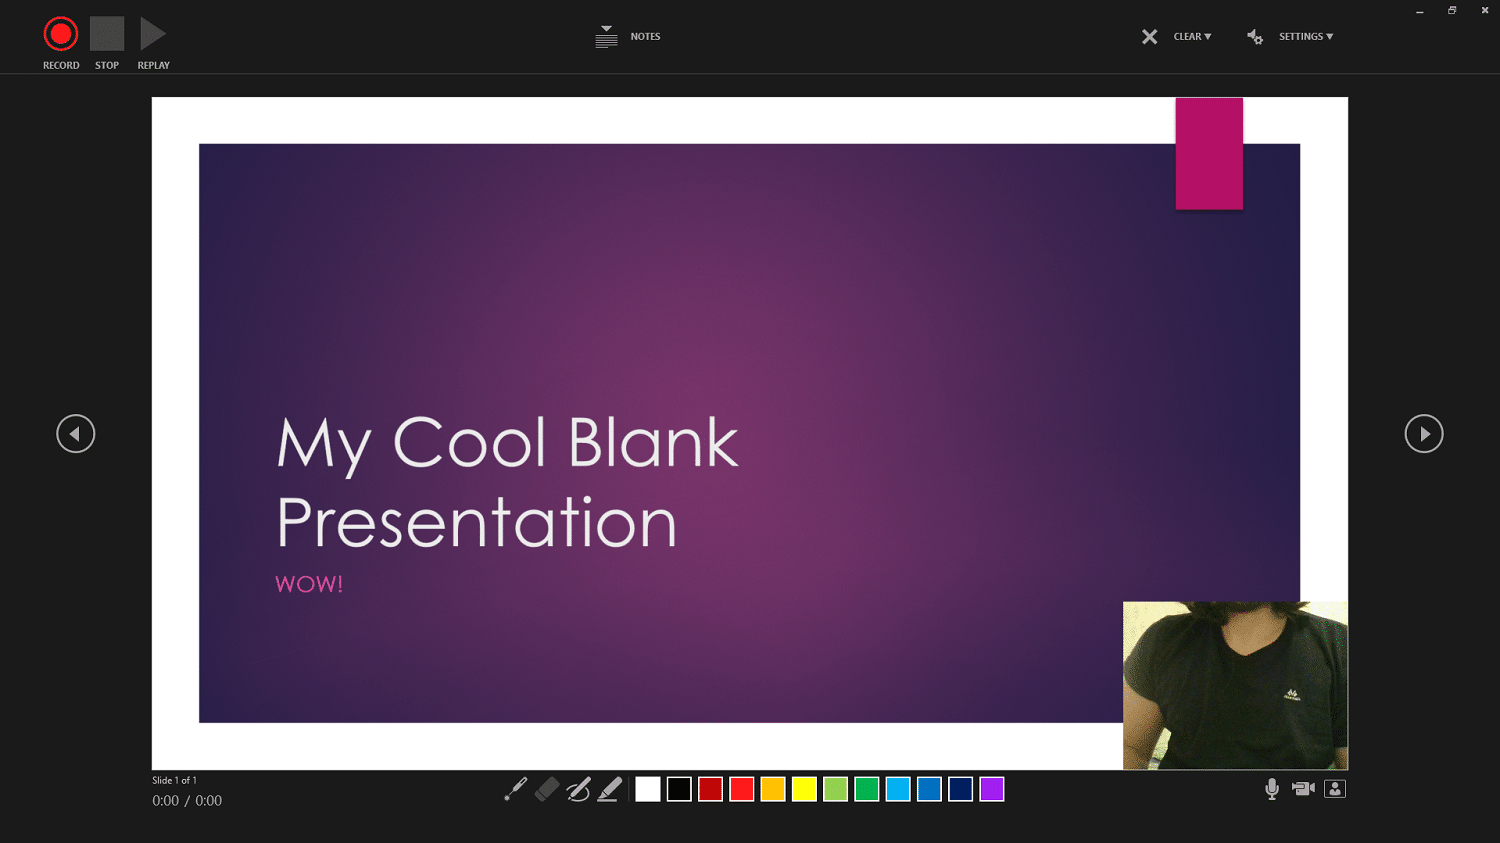 Recording a PowerPoint presentation.